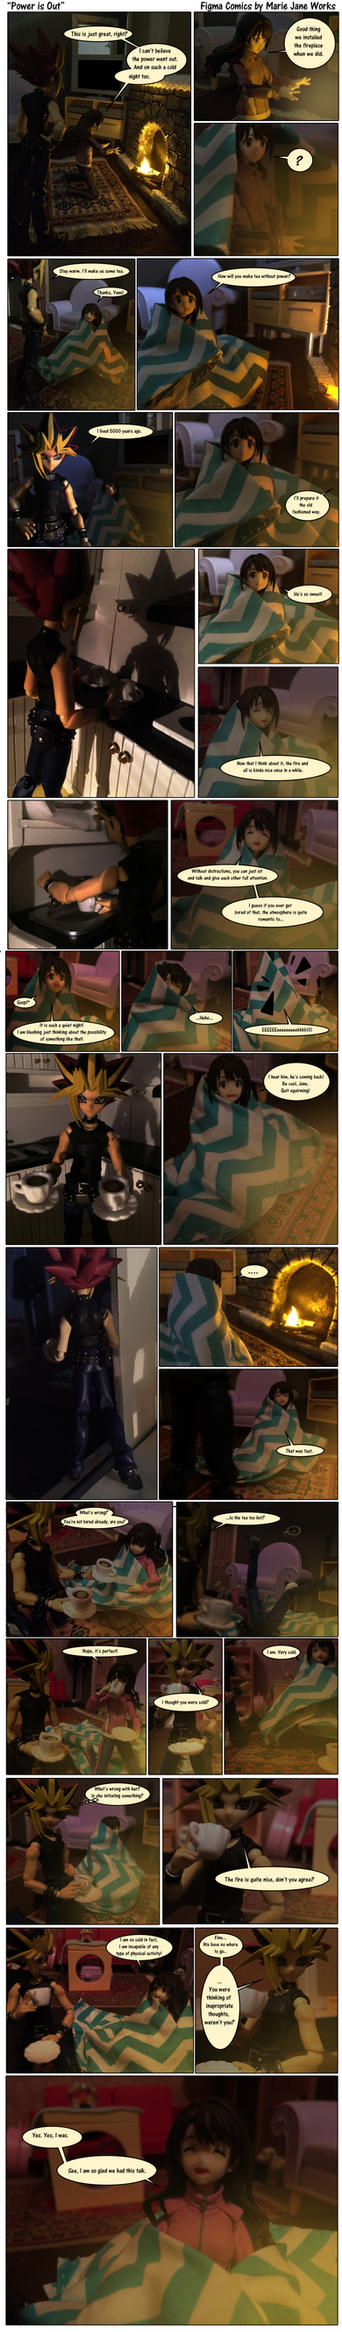 Power is Out ~ Figma Comics by MarieJaneWorks